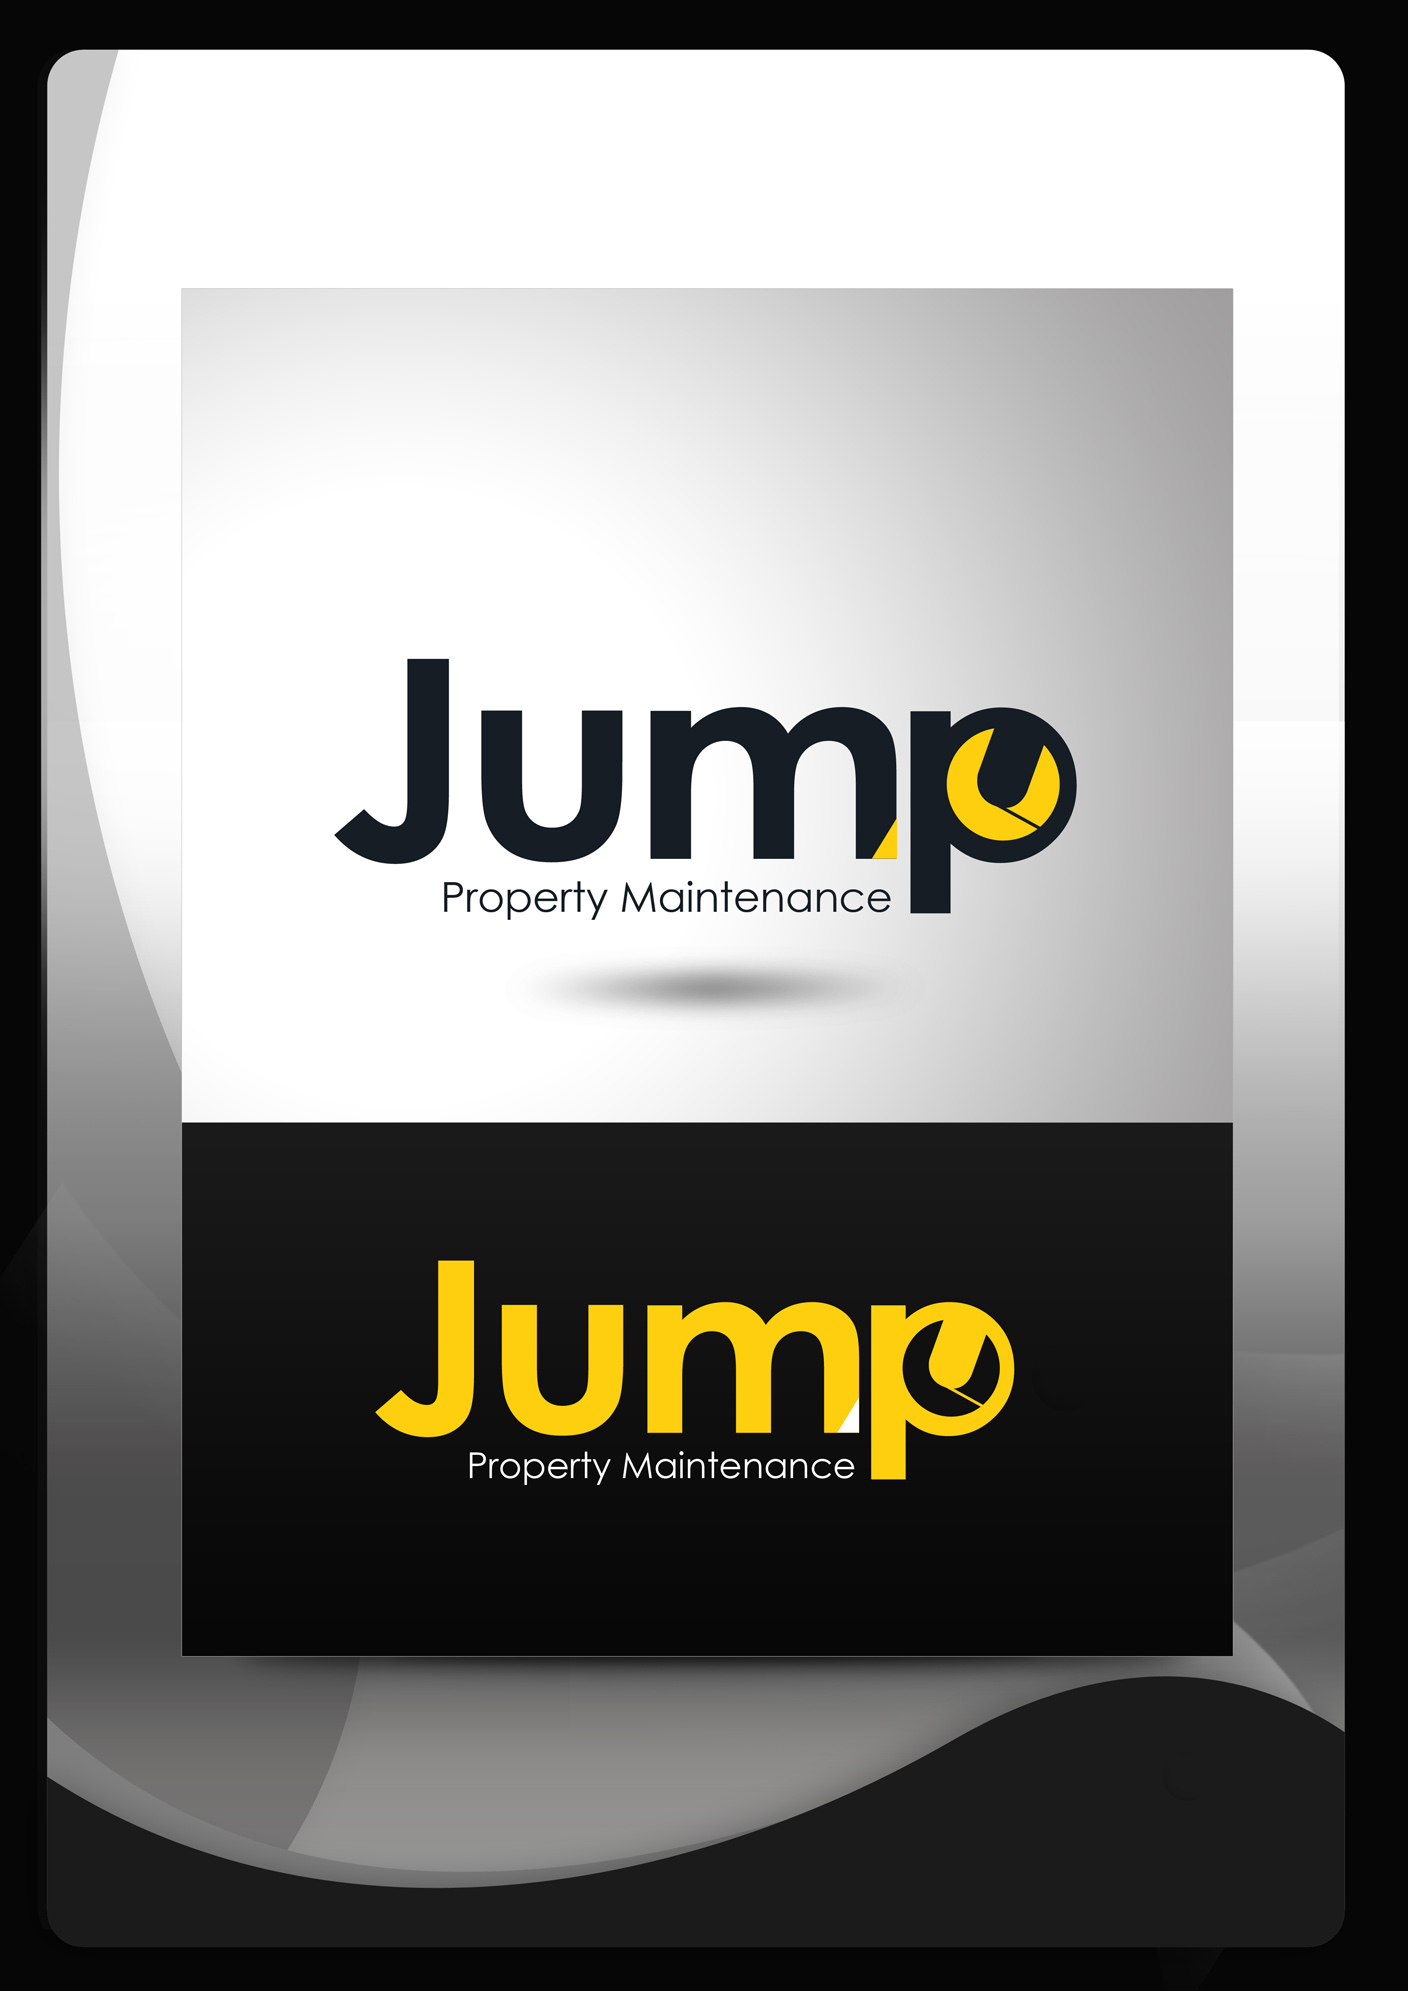 Logo Design by Mark Anthony Moreto Jordan - Entry No. 74 in the Logo Design Contest Creative Logo Design for Jump Property Maintenance.